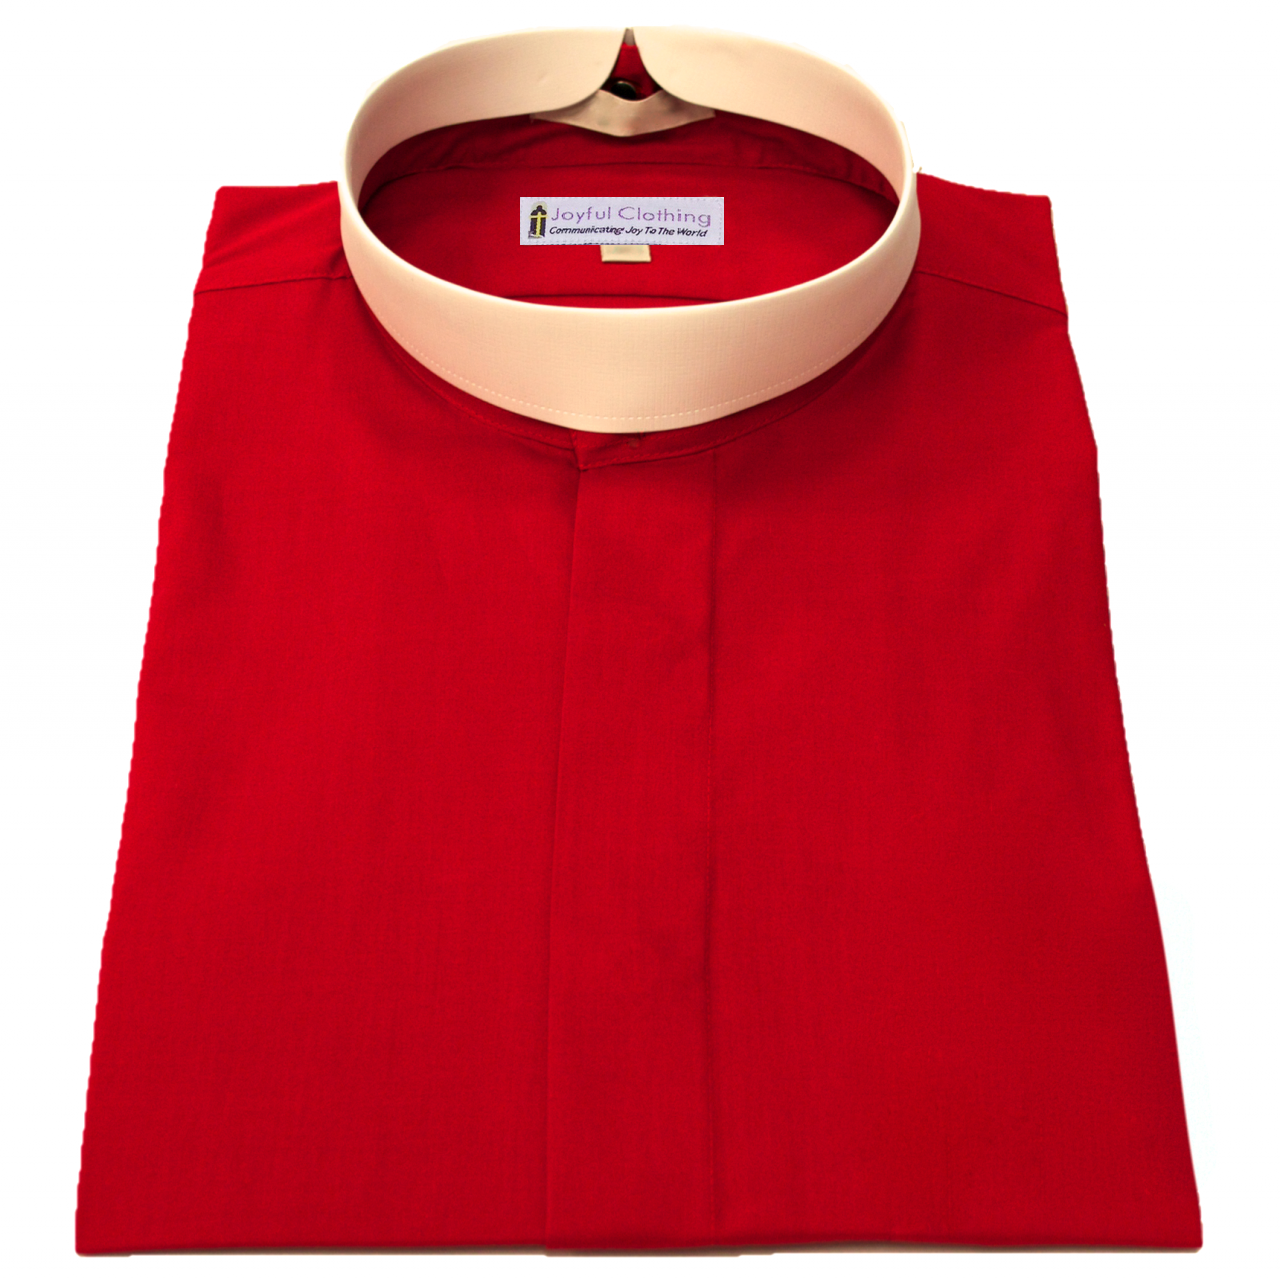 657. Women's Short-Sleeve (Banded) Full-Collar Clergy Shirt - Red